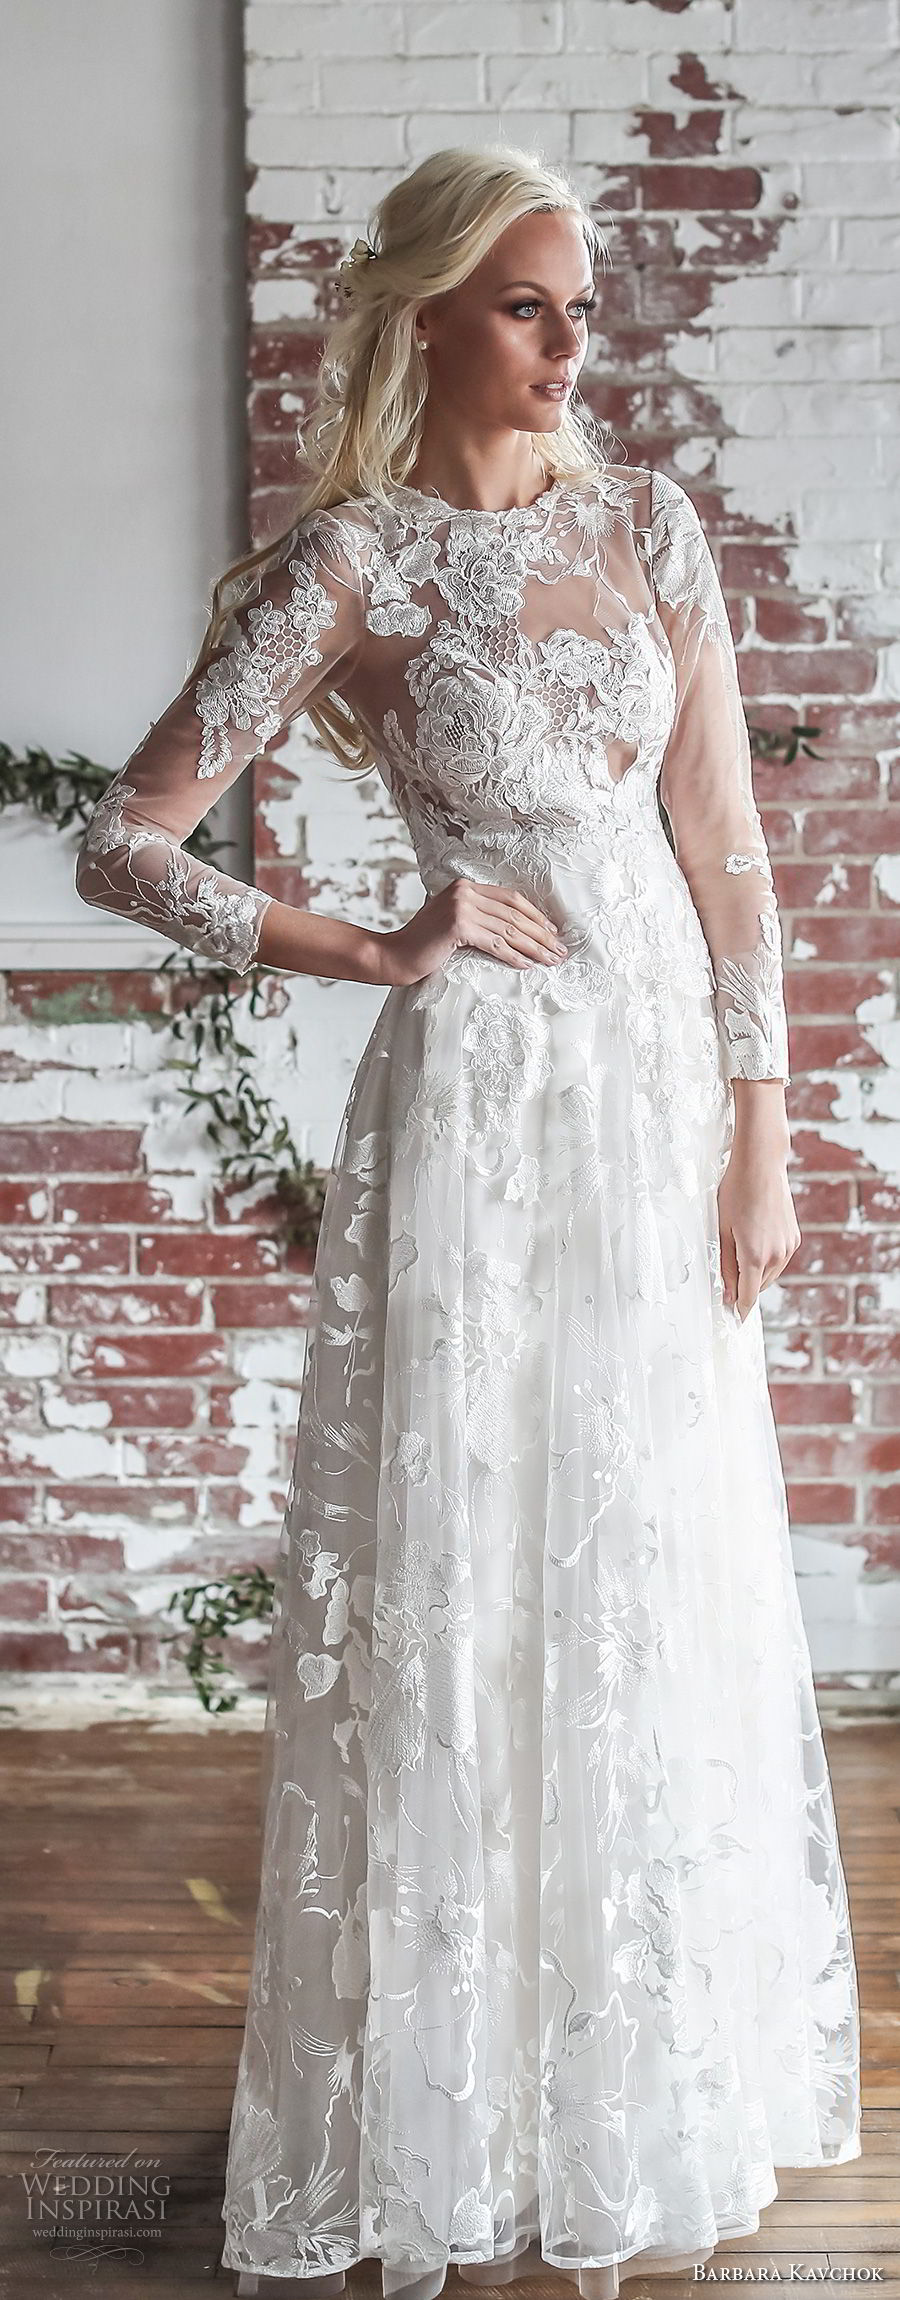 barbara kavchok spring 2018 bridal three quarter sleeves bateau neckline full embellishment elegant romantic soft a line wedding dress sheer lace back sweep train (camille) lv